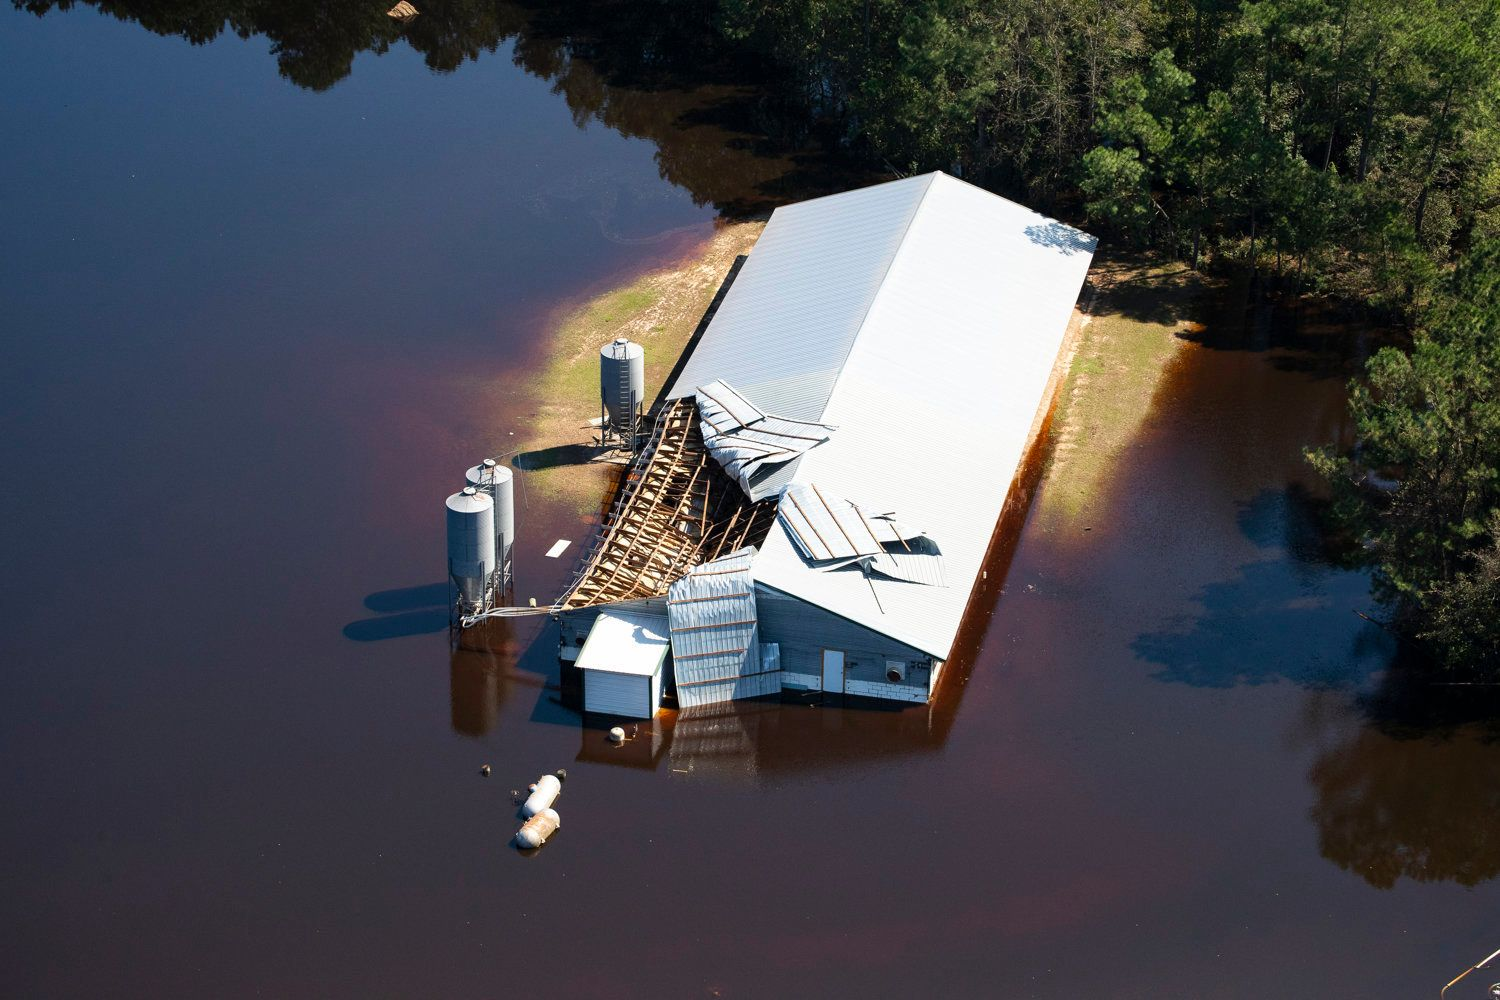 A damaged structure on a hog farm surrounded by flood waters in White Oak, North Carolina after Hurricane Florence battered the area.  Florence began as a disturbance but it gained strength and crossed the threshold from tropical storm to hurricane in a matter of days. Later, it became a fearsome Category 4 hurricane with winds of 130 mph. Although Florence made landfall near Wrightsville, North Carolina,  slowed down, it caused heavy rainfall and devastating flooding.   The storm flooded the state shutting down power plants, breaching coal ash ponds and flooding hog and chicken farms causing extensive environmental damage.